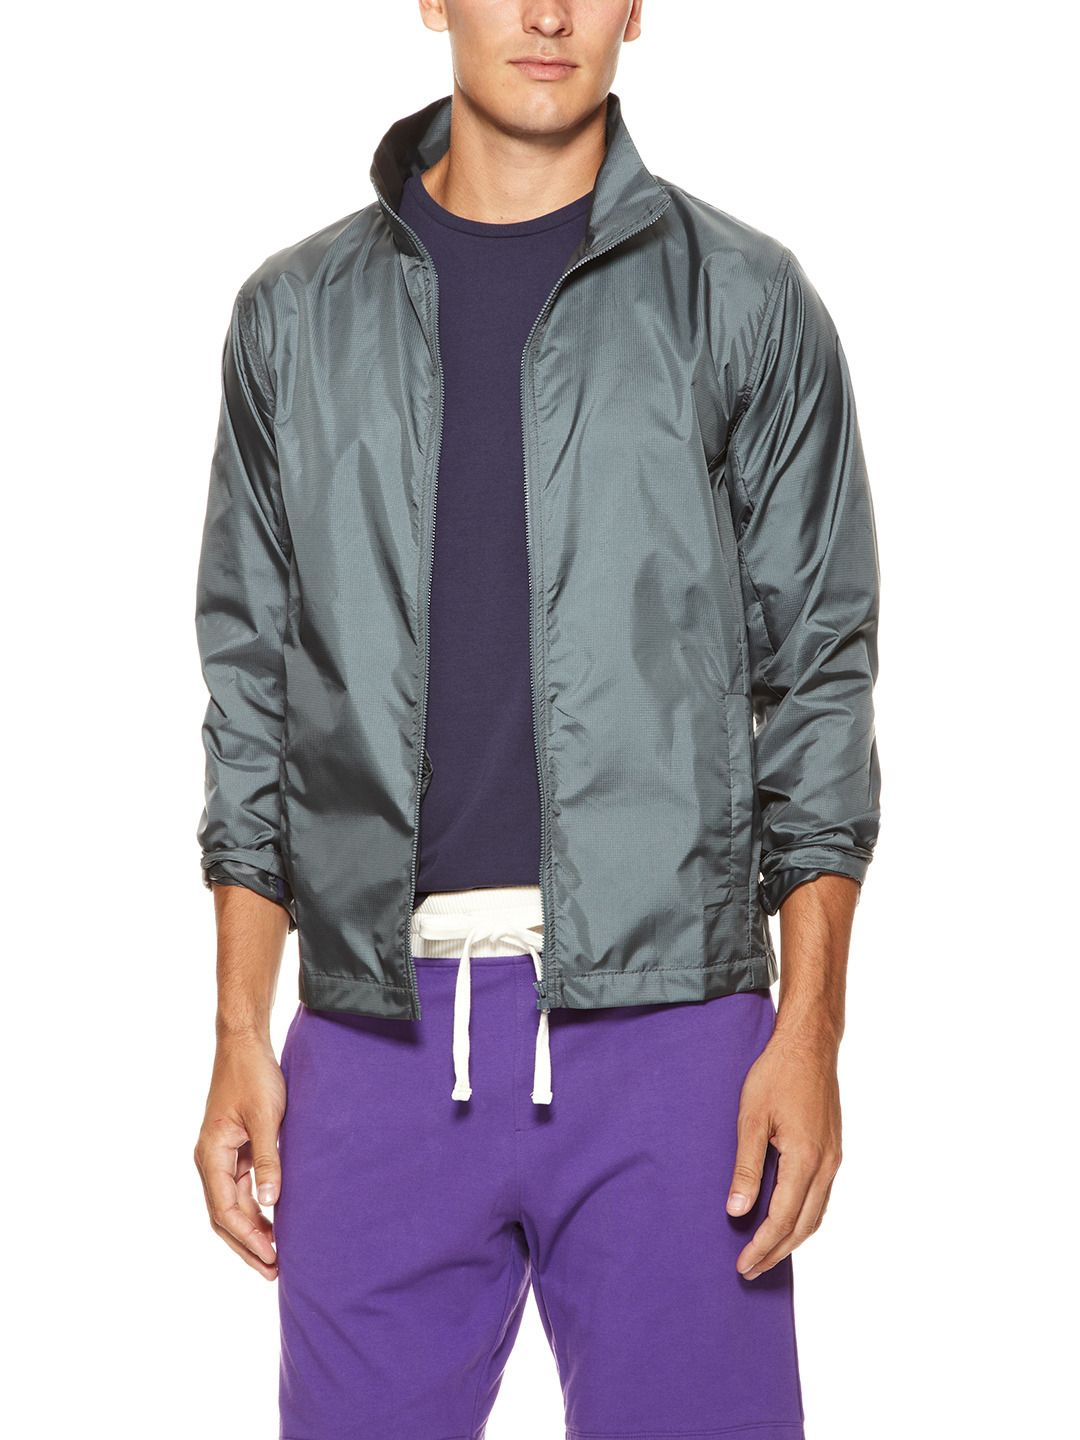 Performance Jacket by Hudson Engineering at Gilt